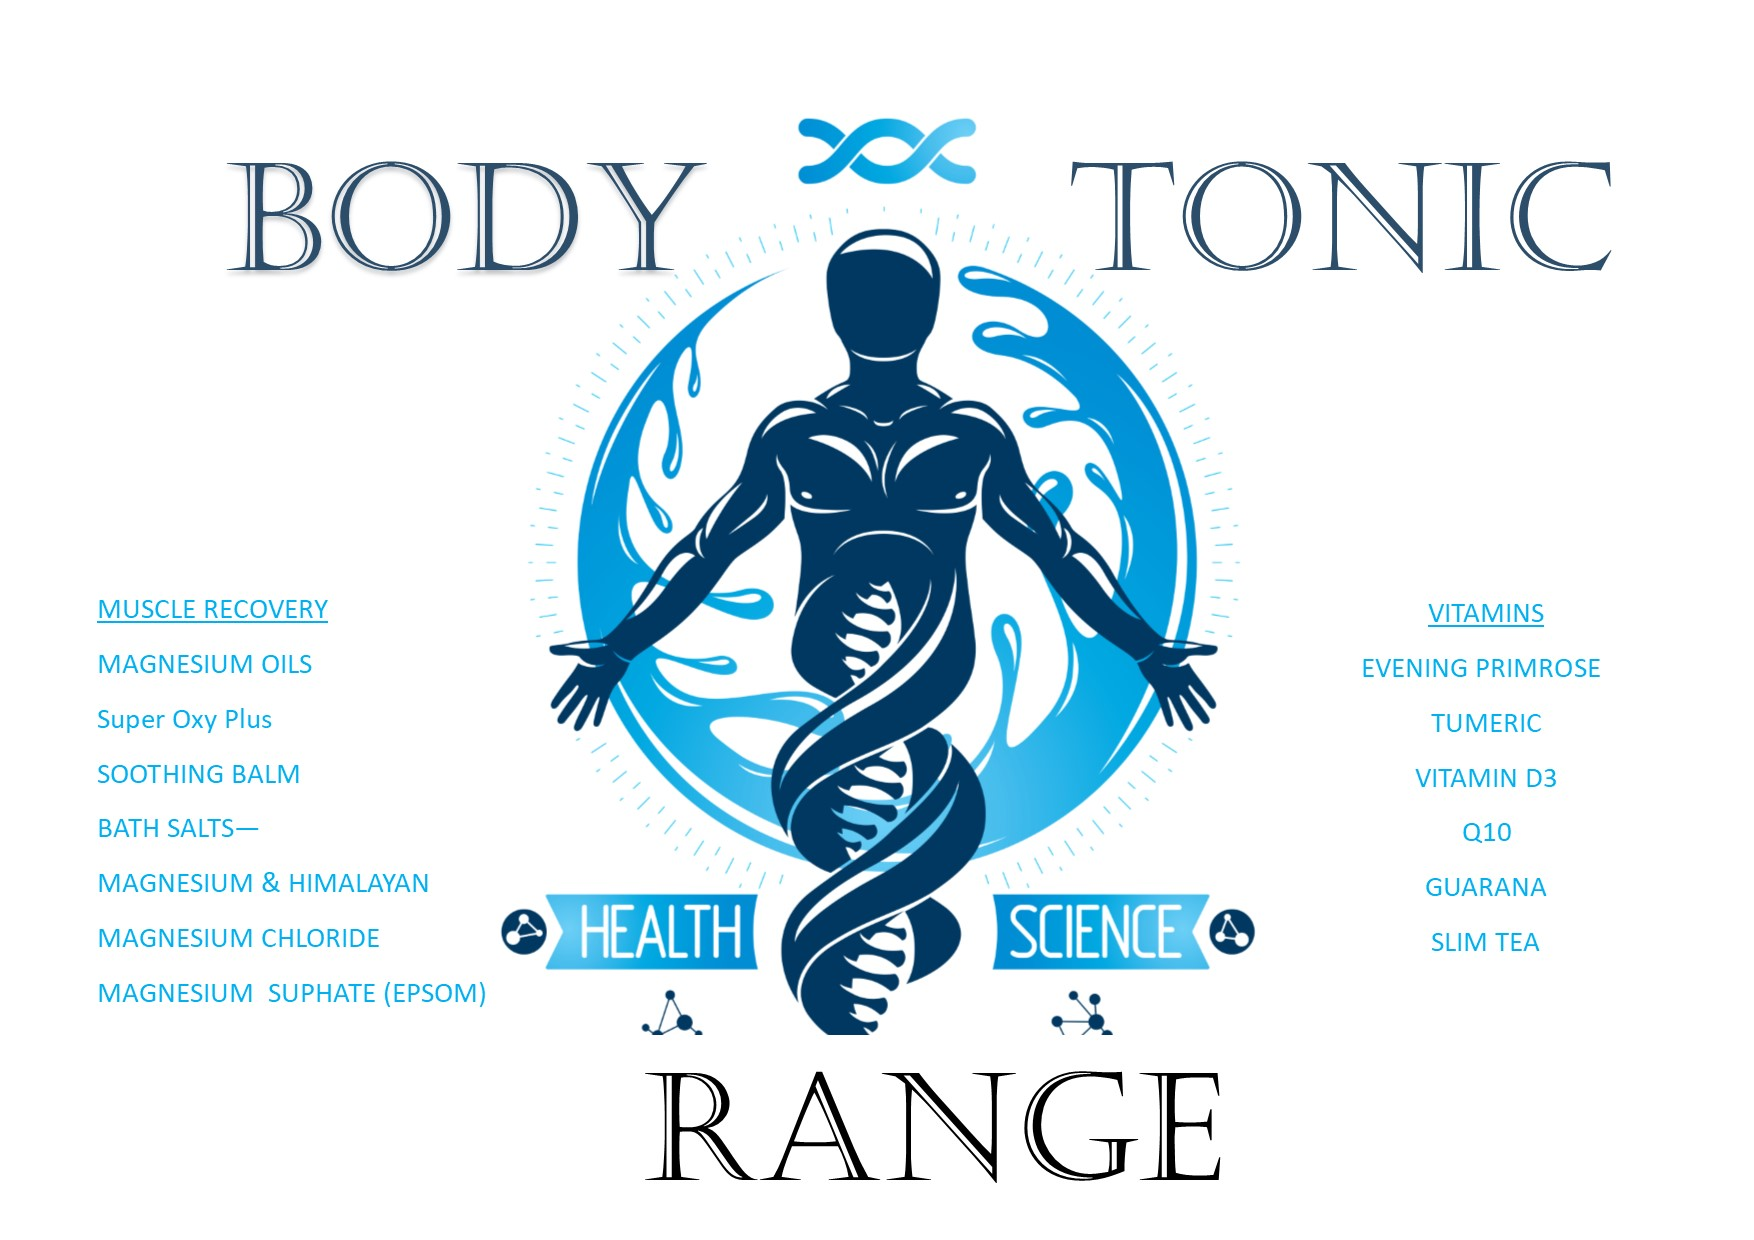 BODY TONIC RANGE